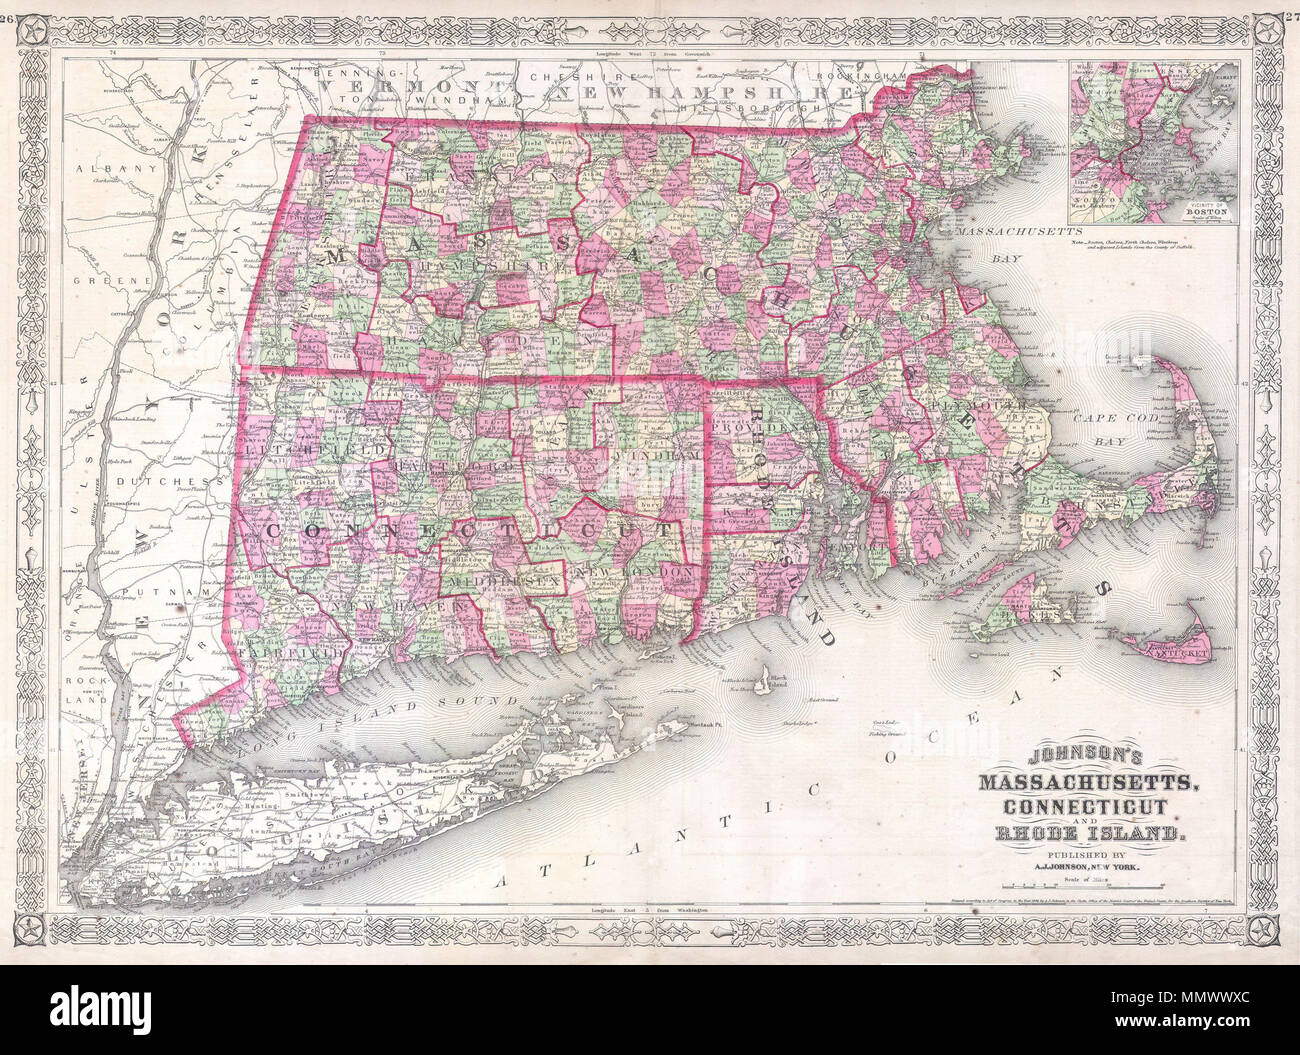 Map Of New York District Courts.English This Is A Beautifully Hand Colored 1864 Lithograph Map Of